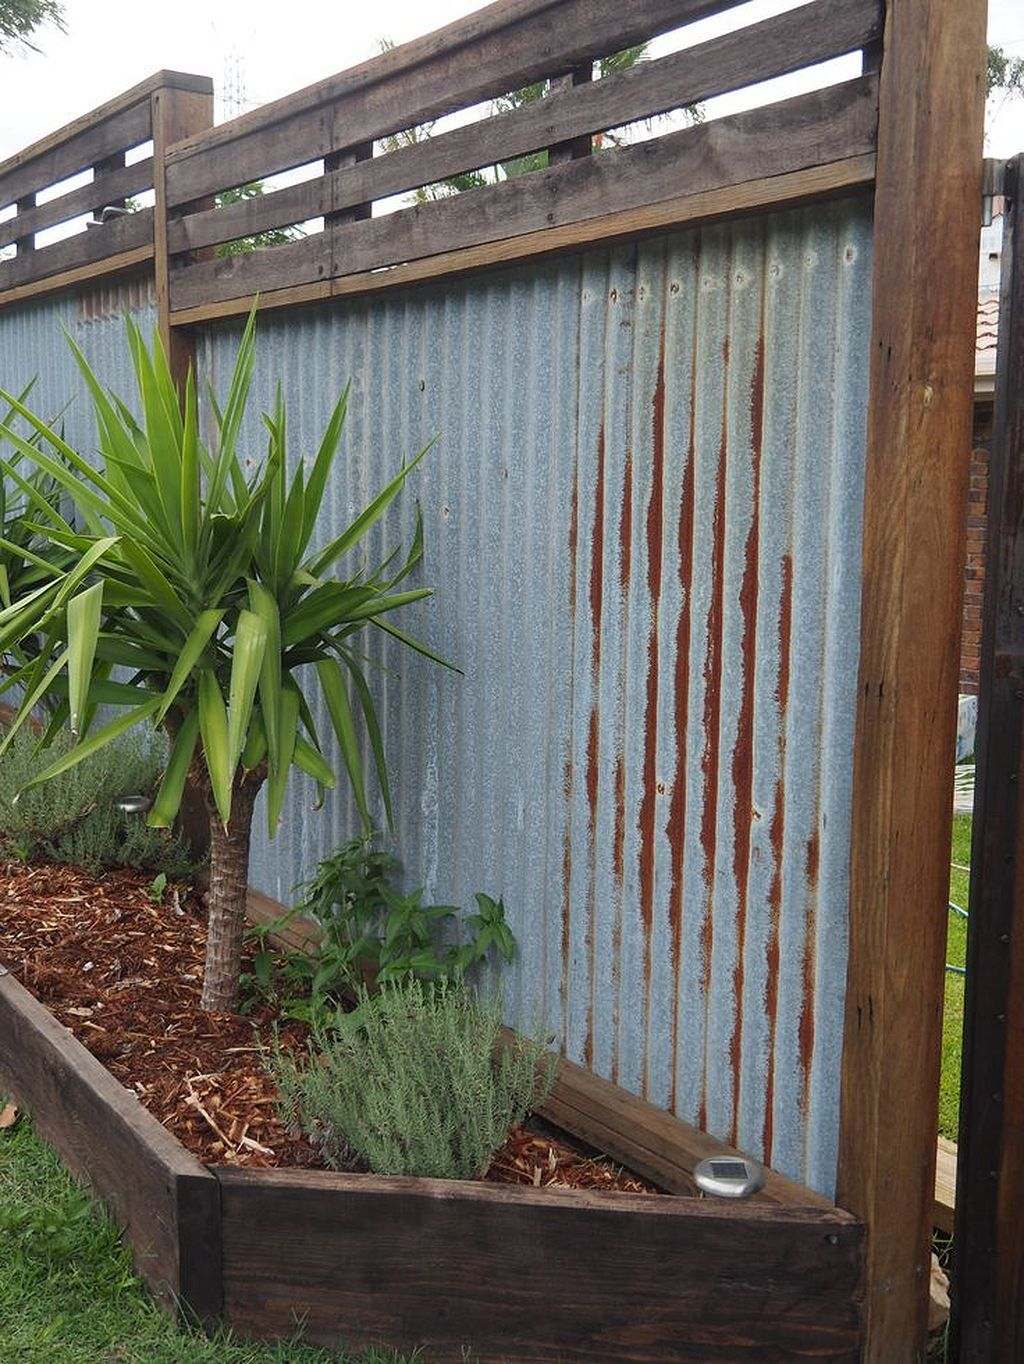 39 Low Cost Diy Privacy Fence Ideas In 2020 Backyard Fences